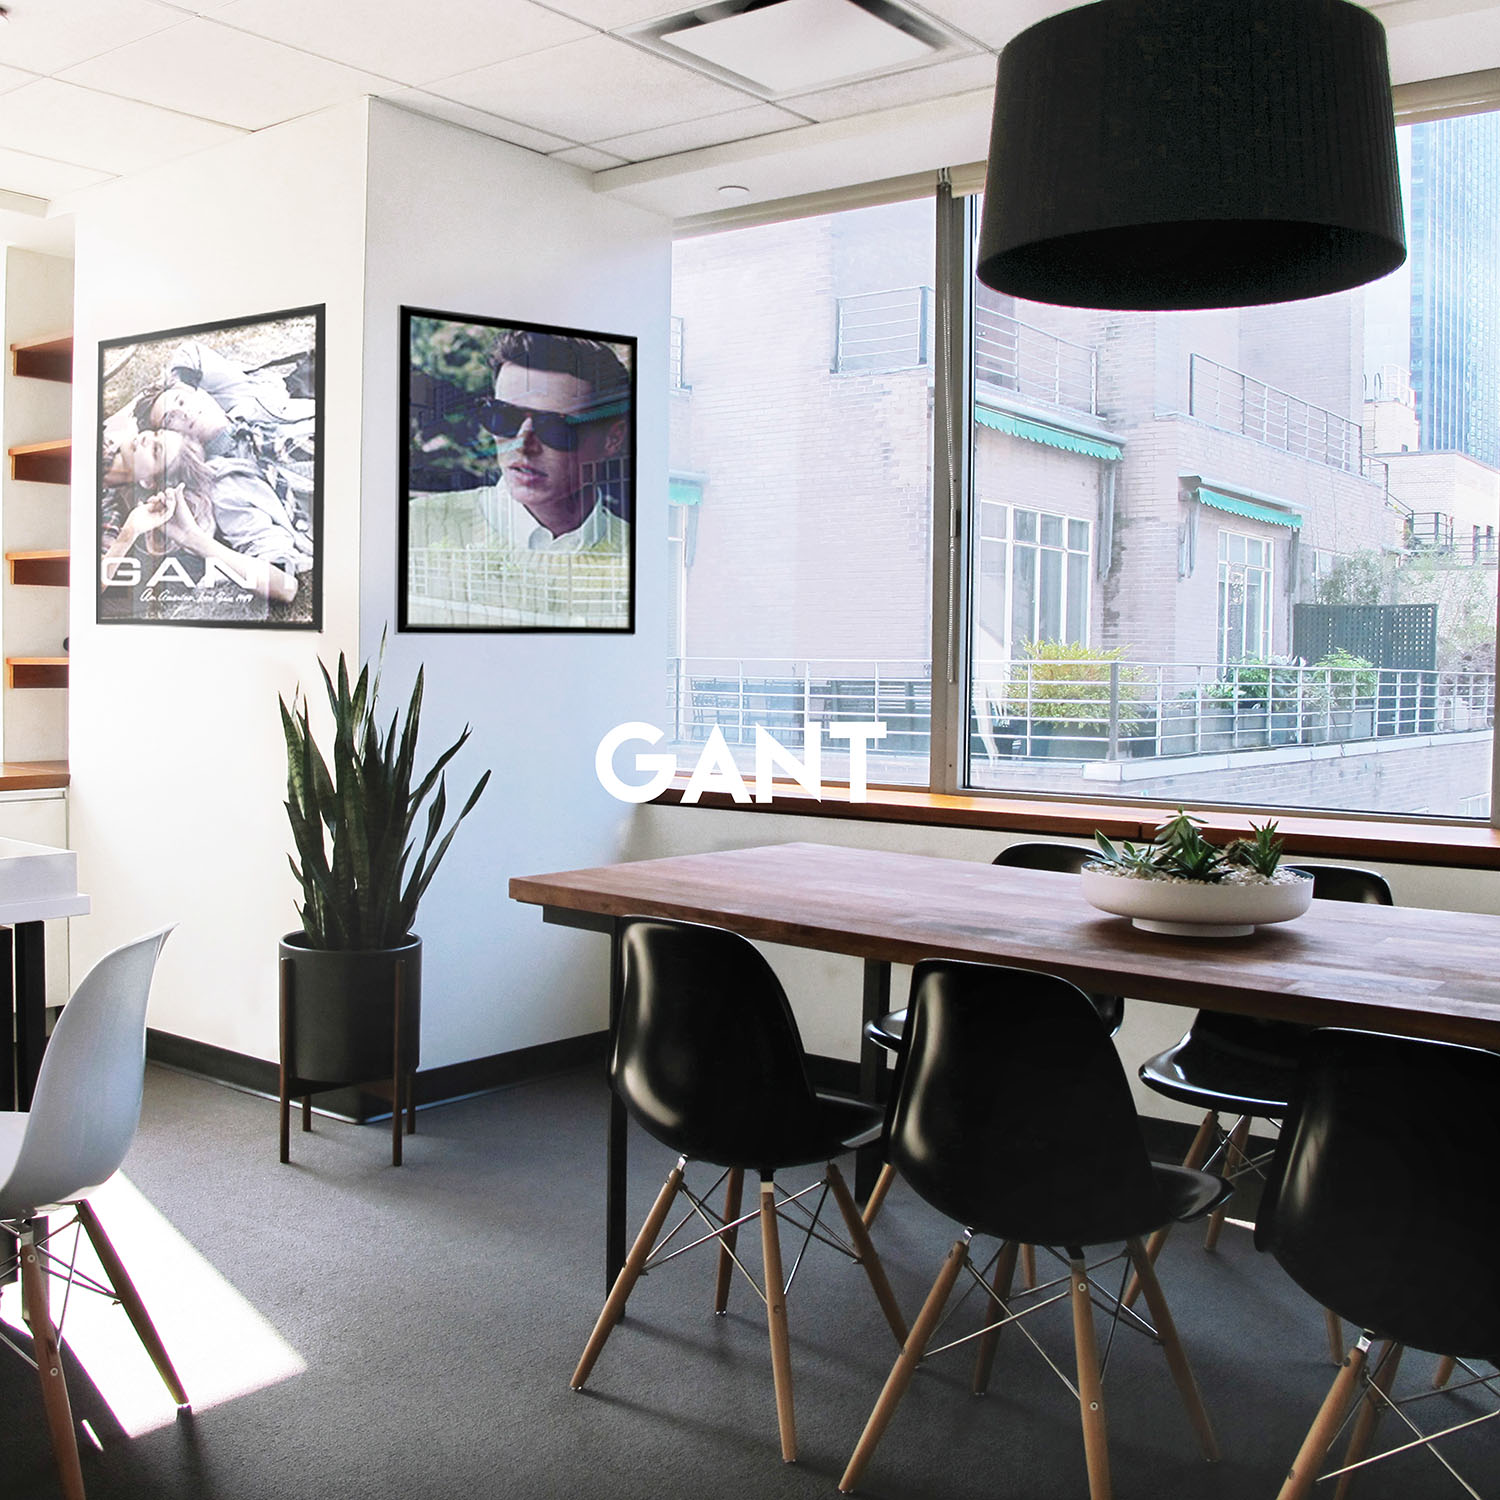 Gant Offices in New York, NY | Office interior design by Gala Magriña Design